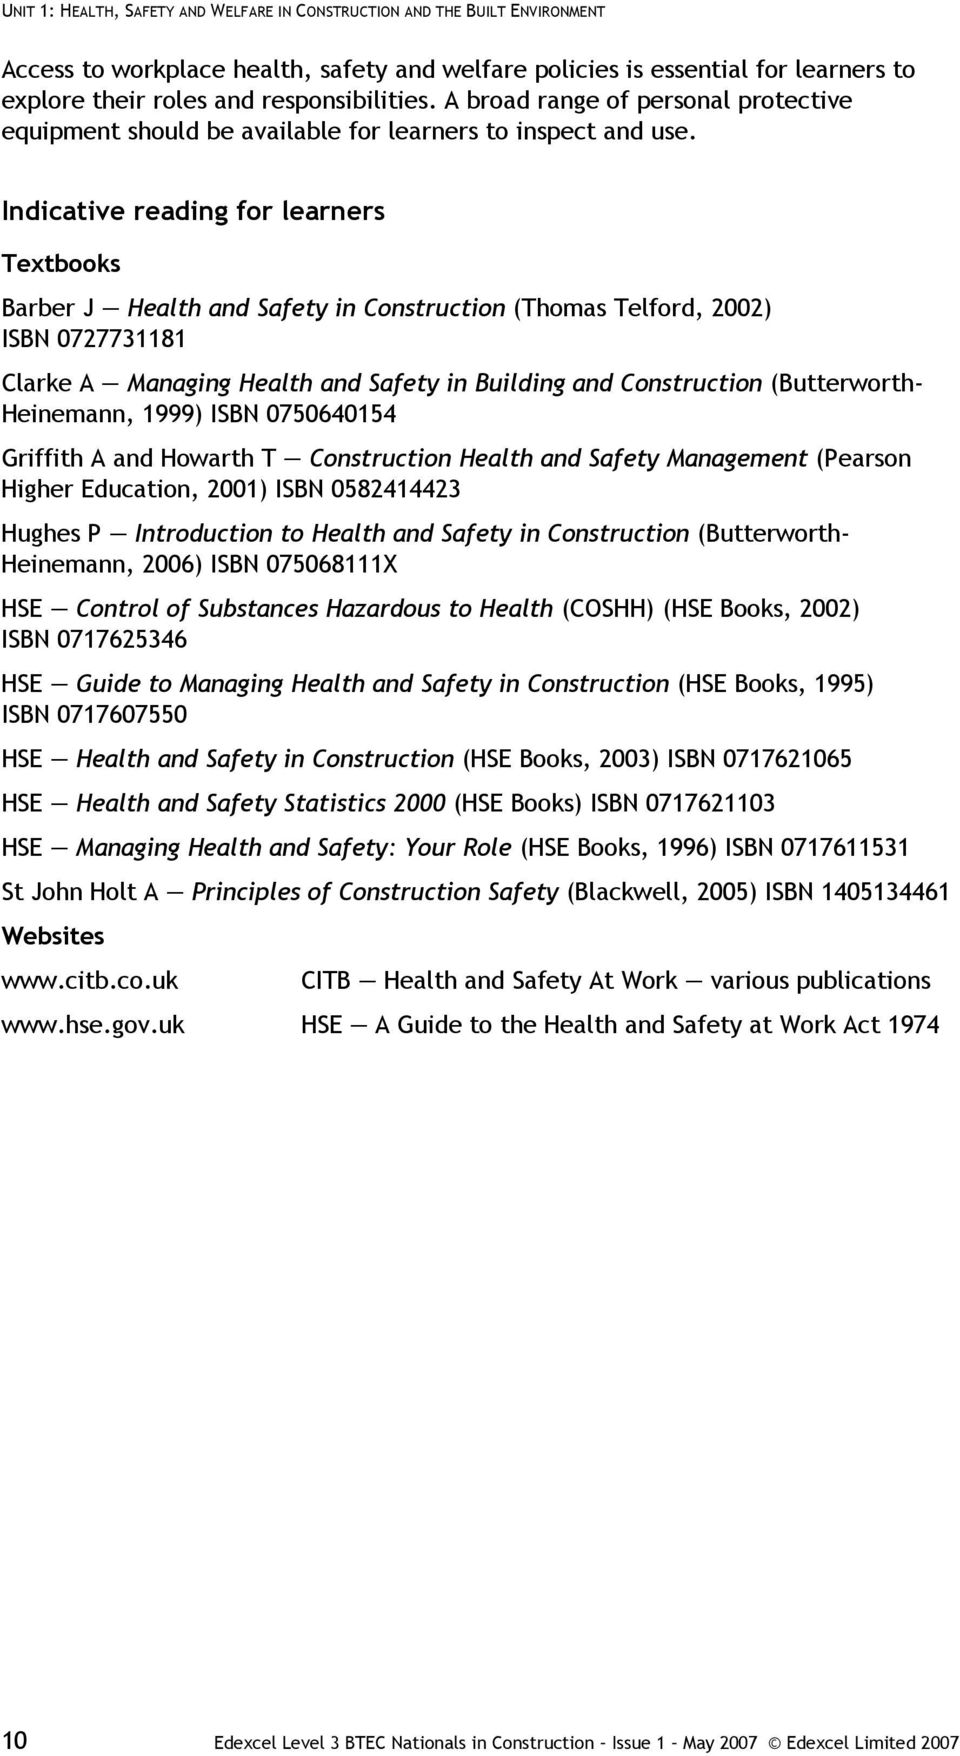 Indicative reading for learners Textbooks Barber J Health and Safety in Construction (Thomas Telford, 2002) ISBN 0727731181 Clarke A Managing Health and Safety in Building and Construction